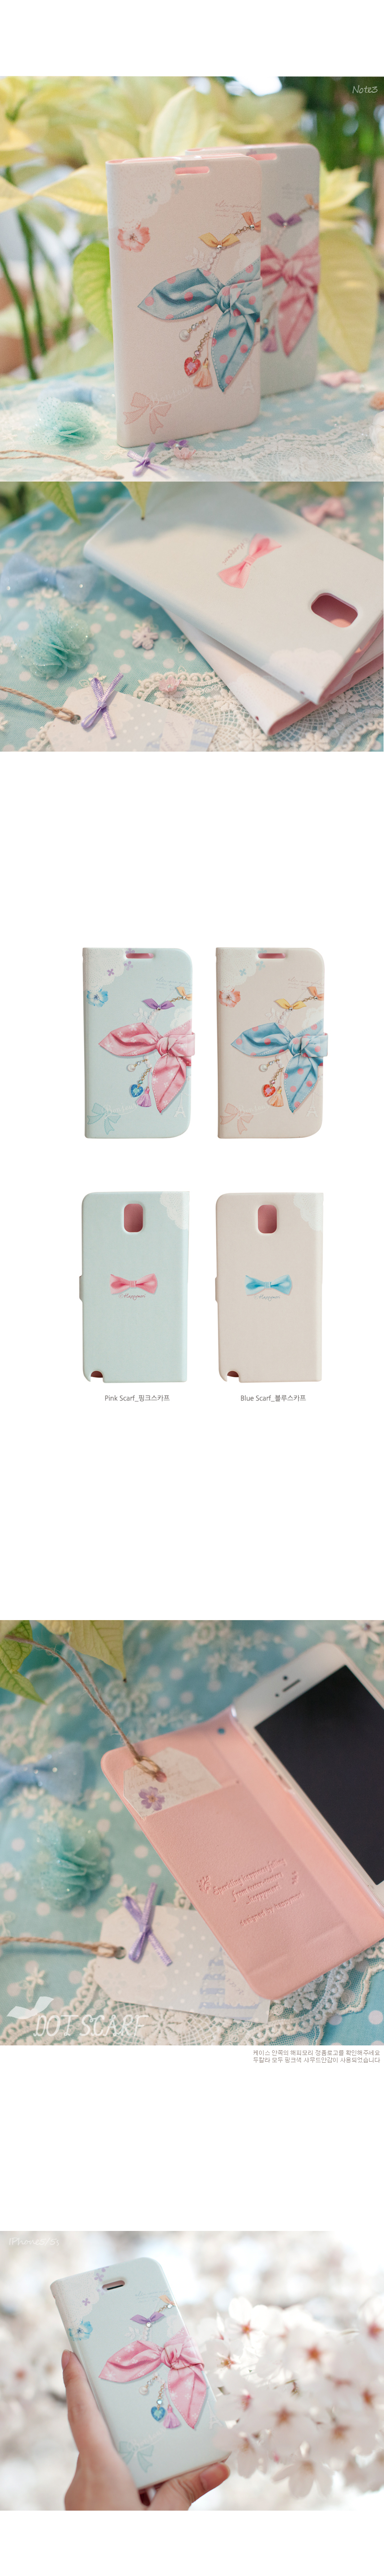 [HAPPYMORI] Flip Cover Case _ Dot Scarf(iPhone6Plus,iPhone6Plus_s,Galaxy S6Edge,Galaxy S6,Galaxy Note4)